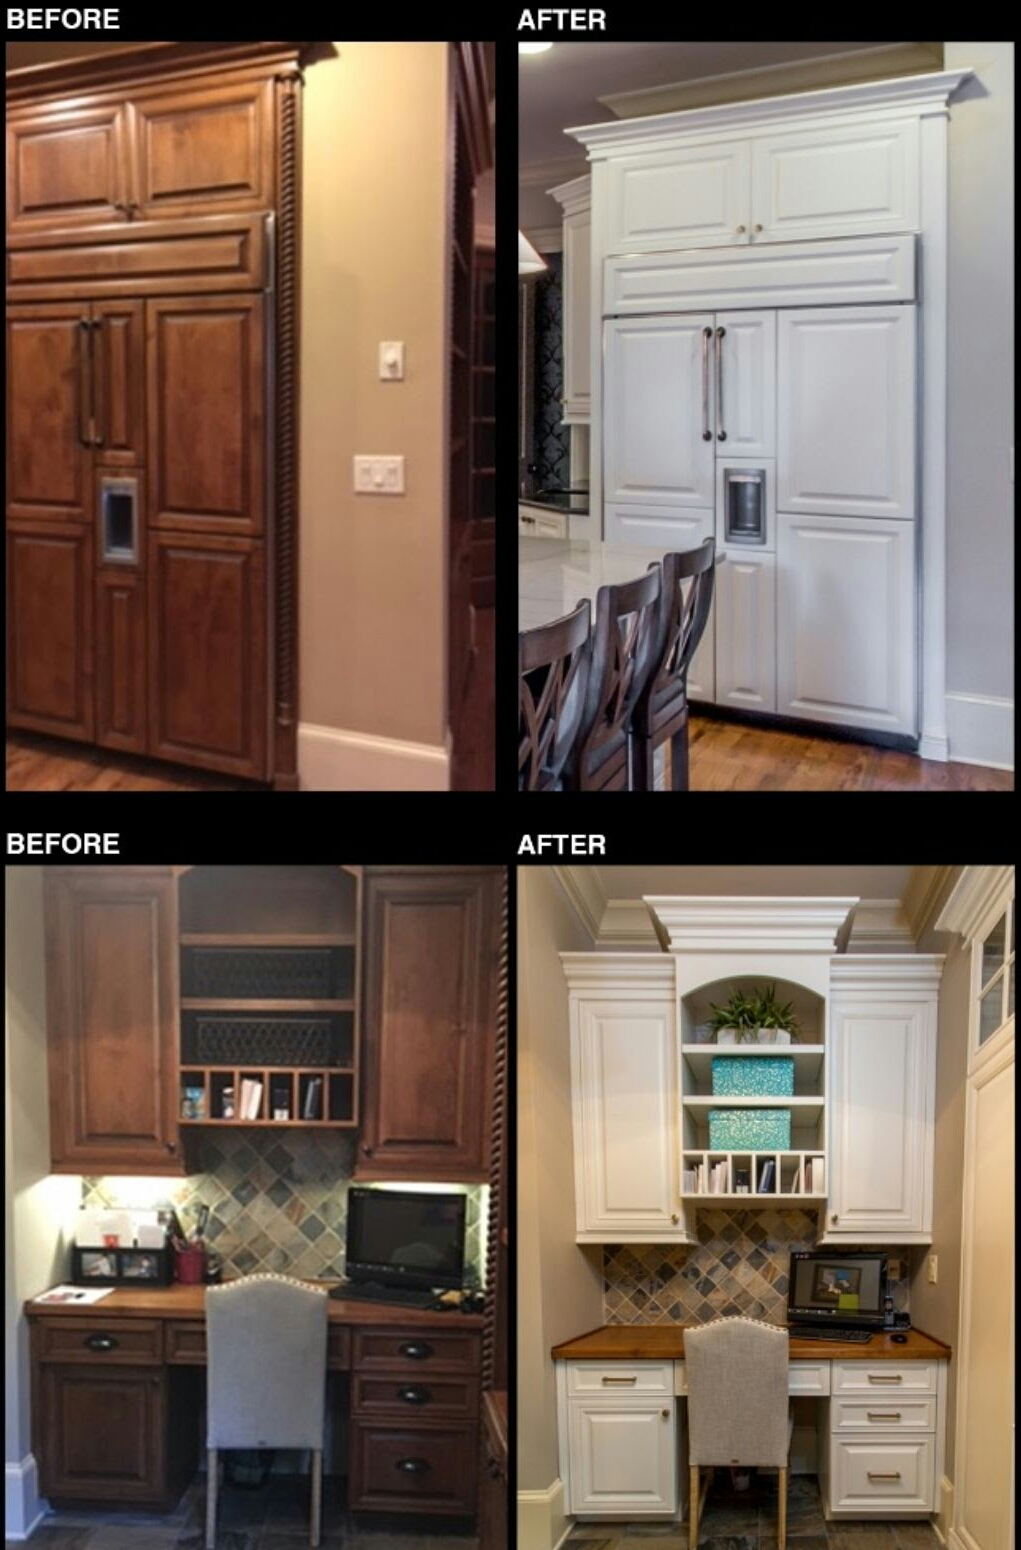 Cabinet Refinishing Company in denver  Cabinets